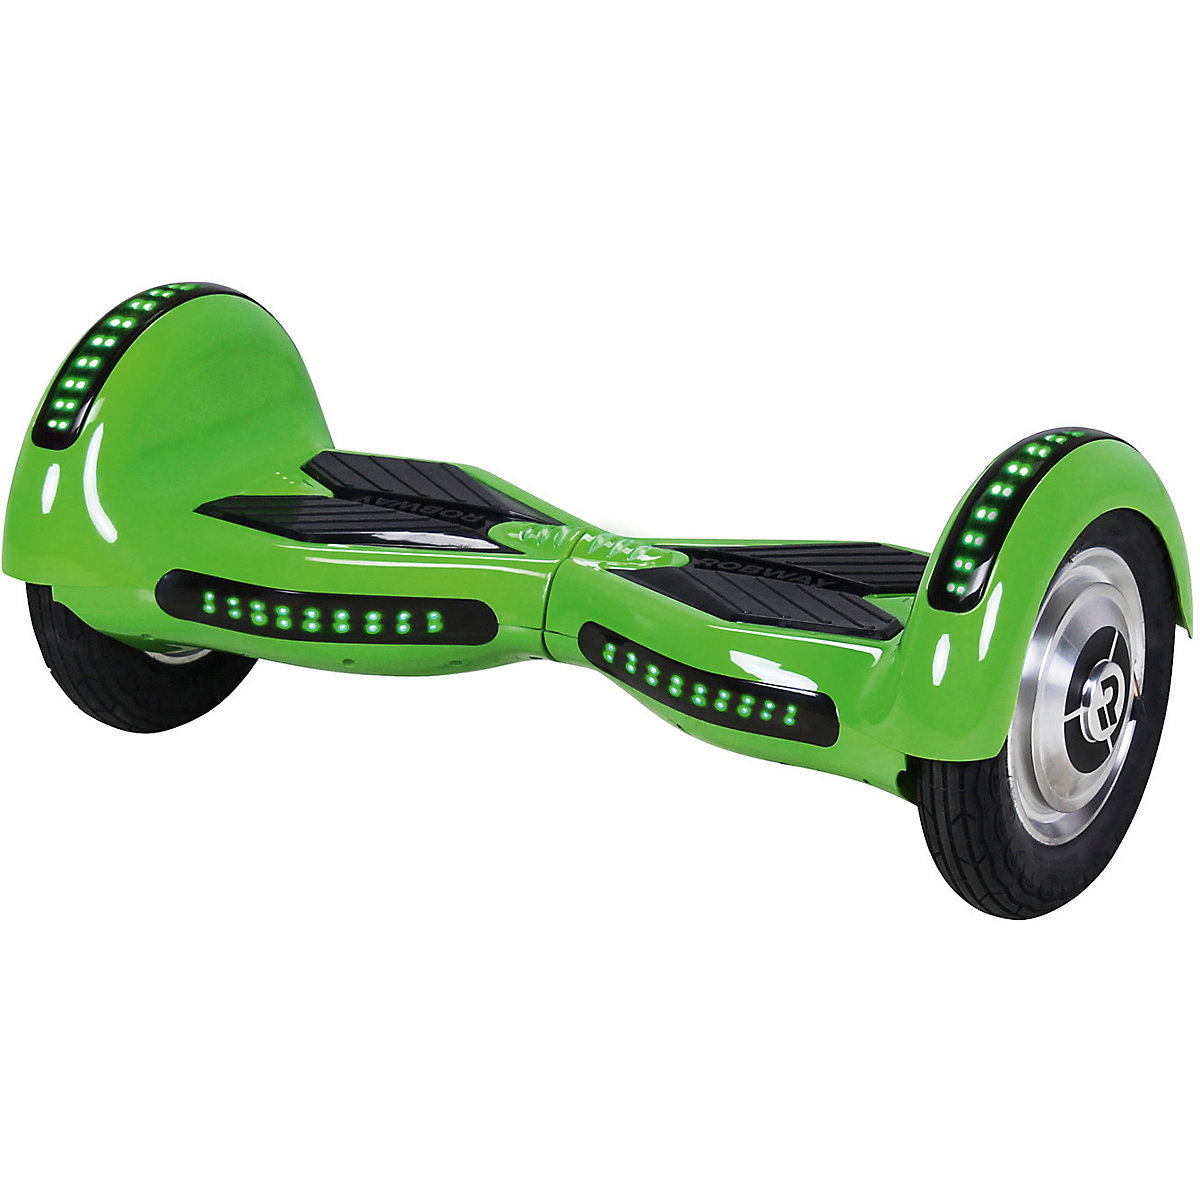 e balance hoverboard robway w3 10 zoll mit app funktion gr n robway mytoys. Black Bedroom Furniture Sets. Home Design Ideas